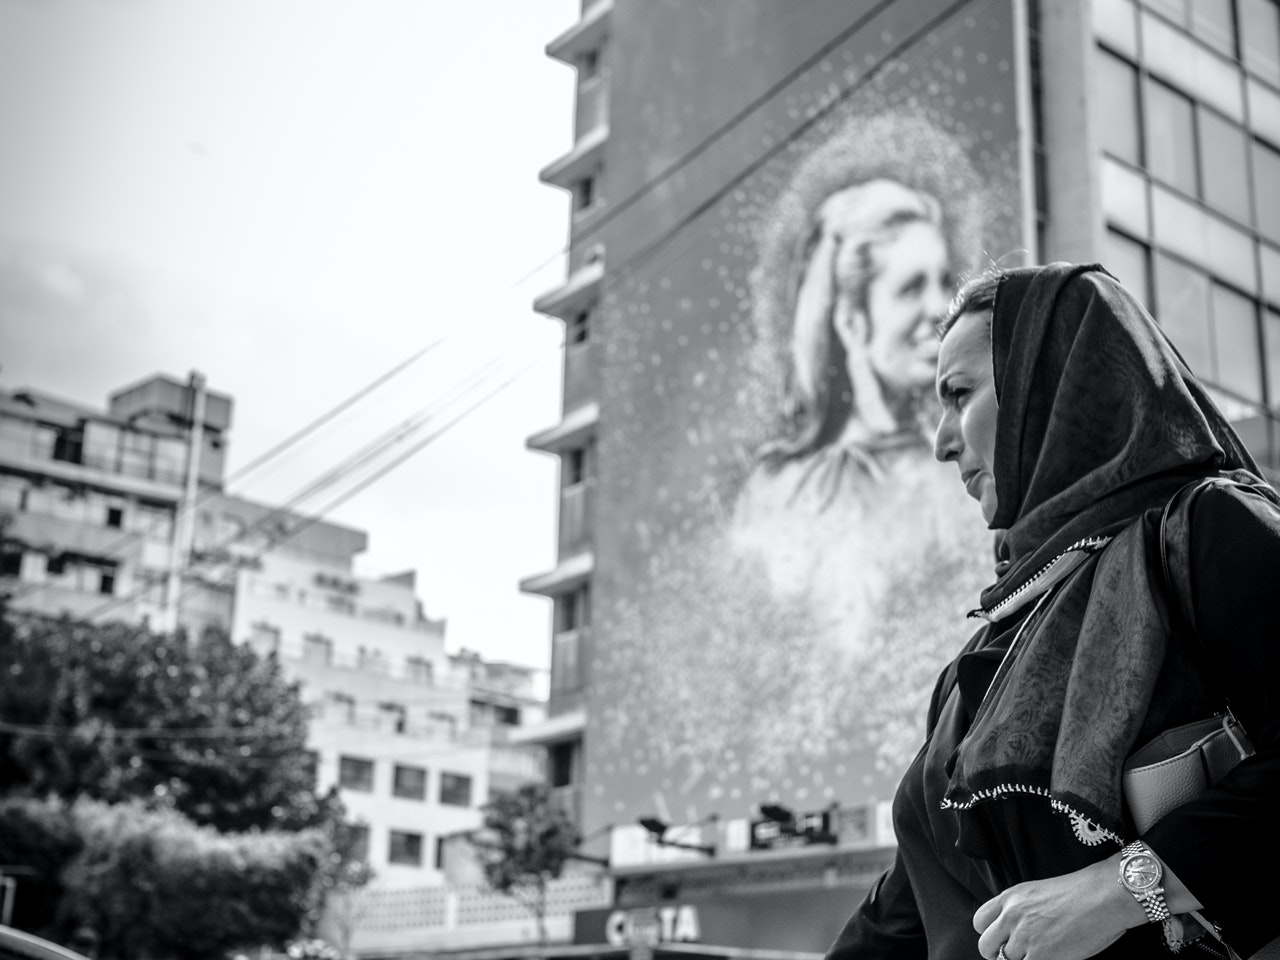 Woman-NfrontOf-Mural-small